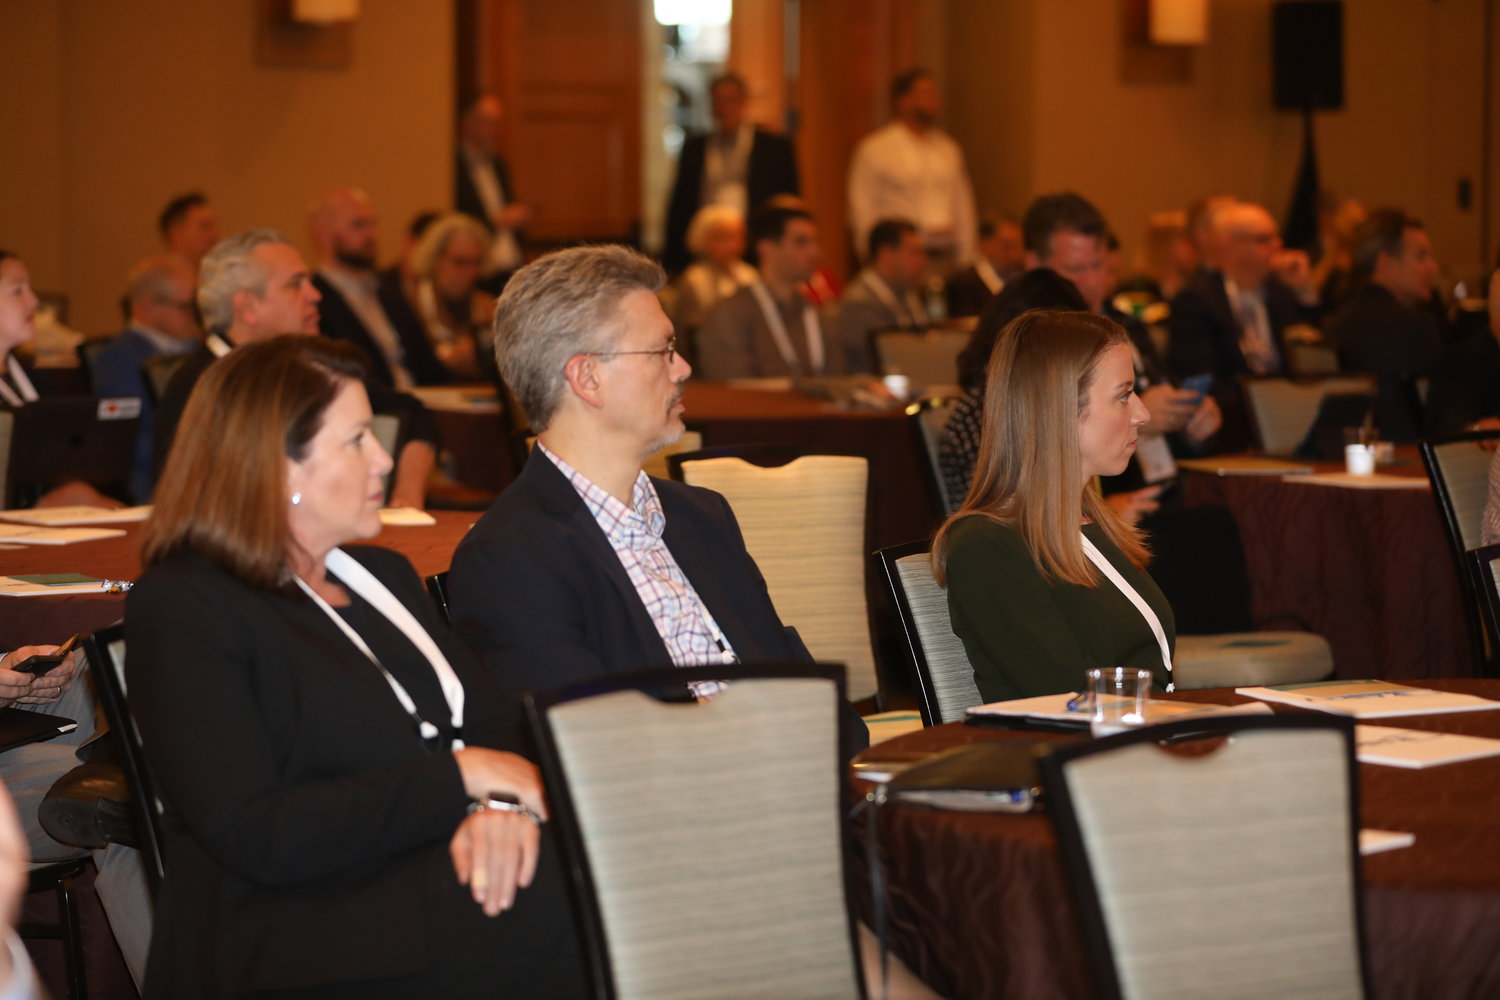 Monday photos of the Mega Conference 2020 at the Omni Hotel in Fort Worth, Texas, Feb. 17, 2020. (Bob Booth)